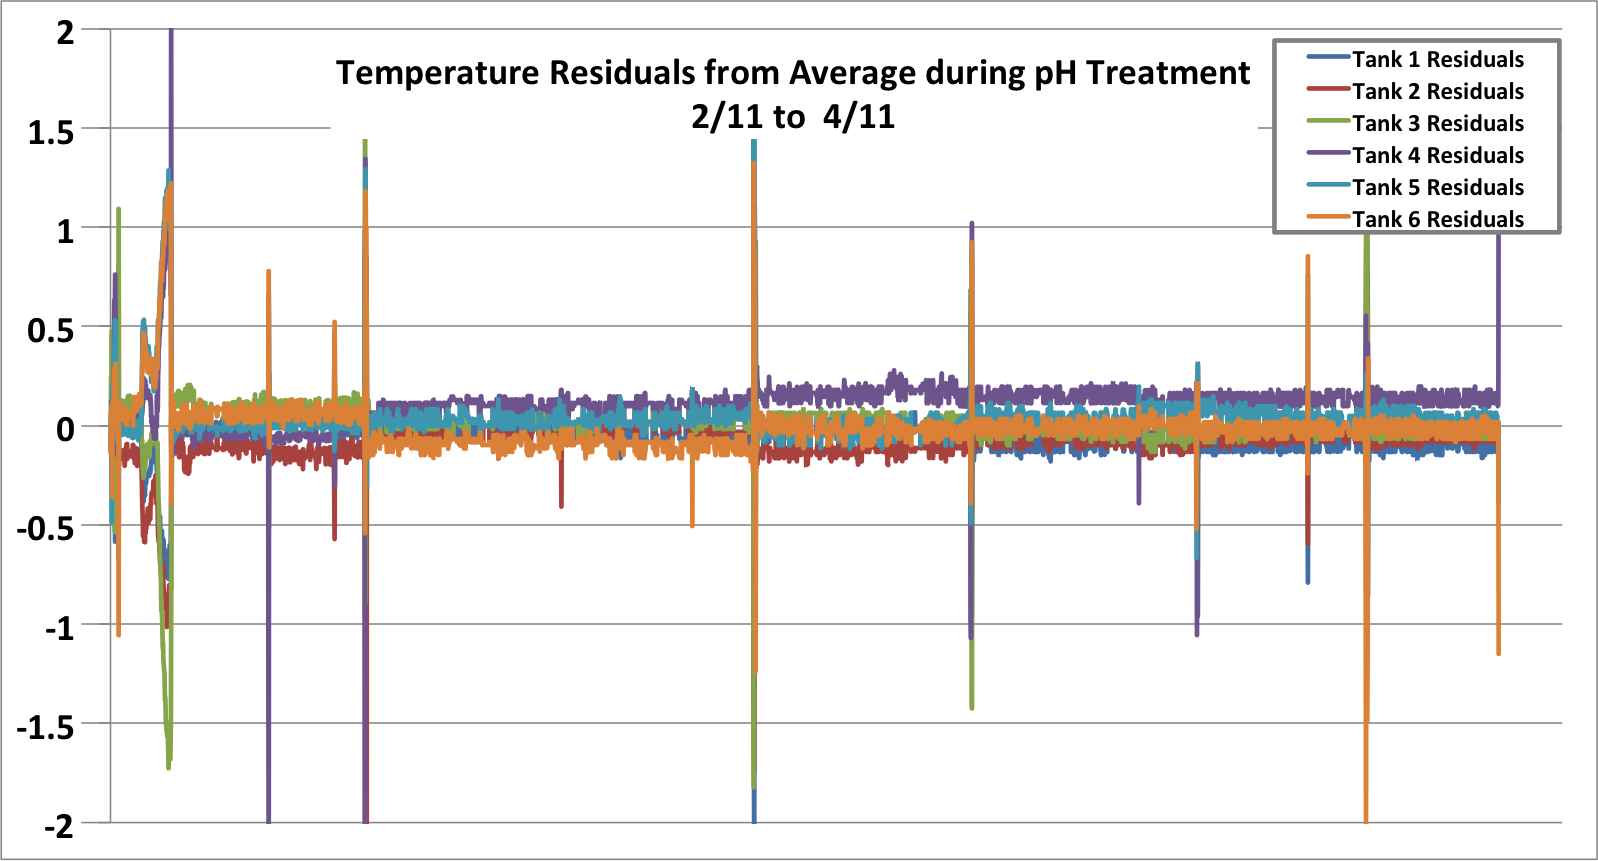 Residuals from Average Temp during pH Treatments